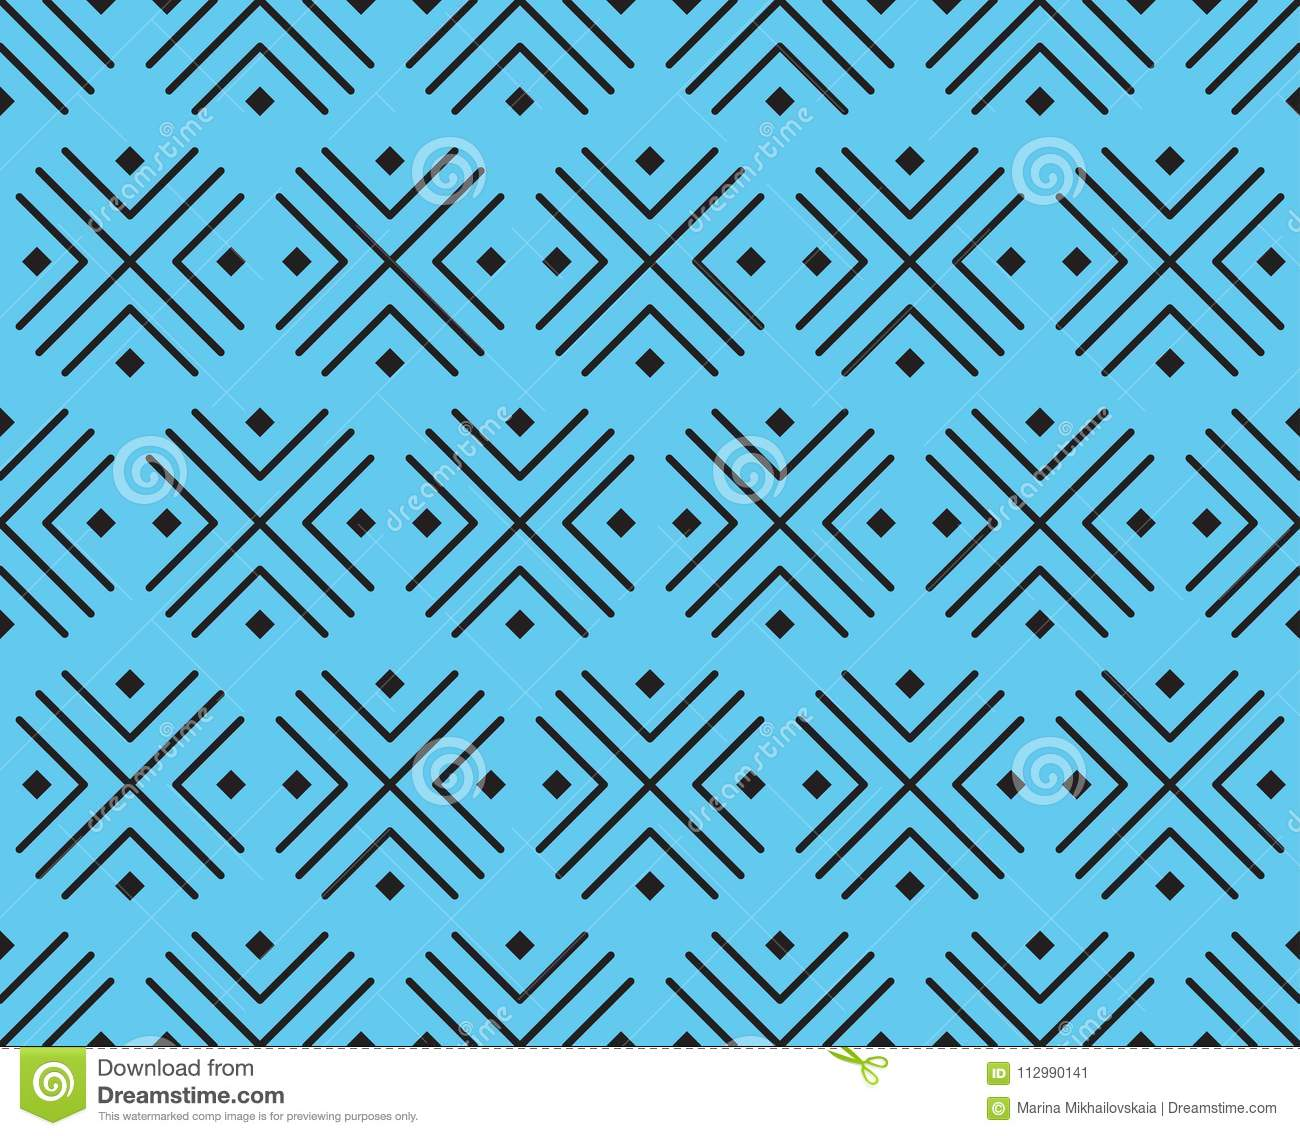 Vector pattern of crosses and squares of black color on a blue background.